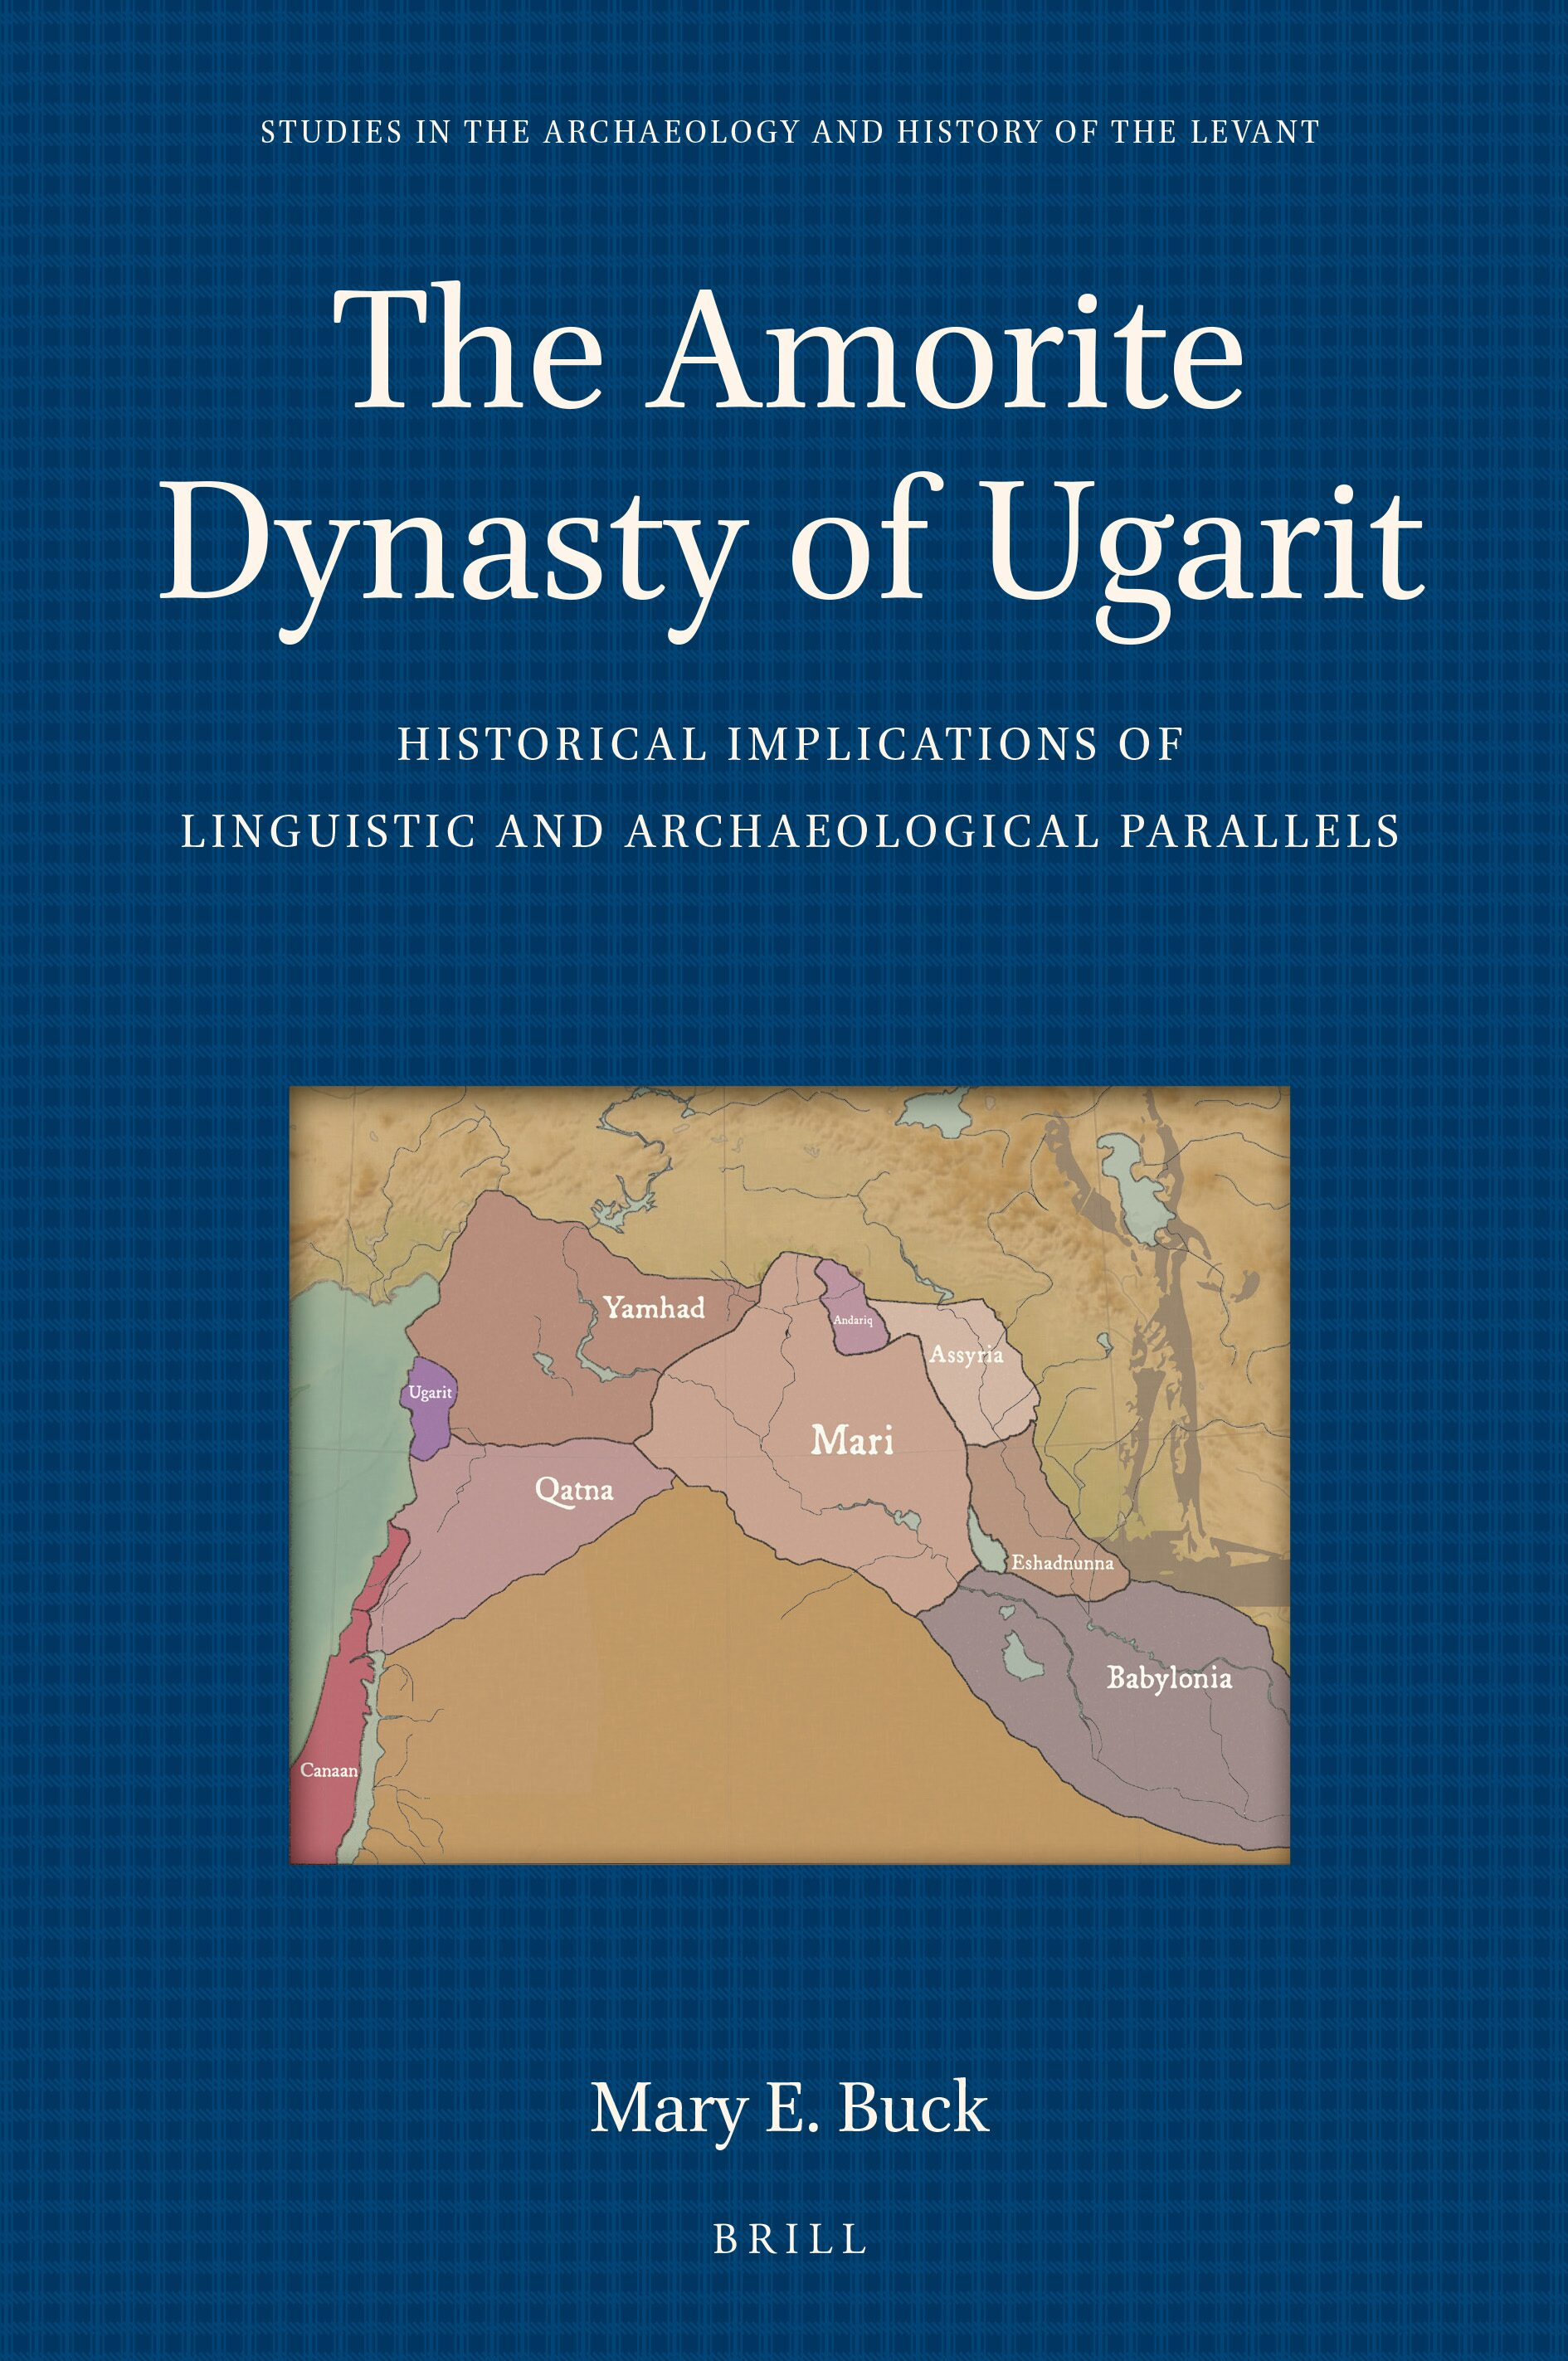 Bibliography In The Amorite Dynasty Of Ugarit